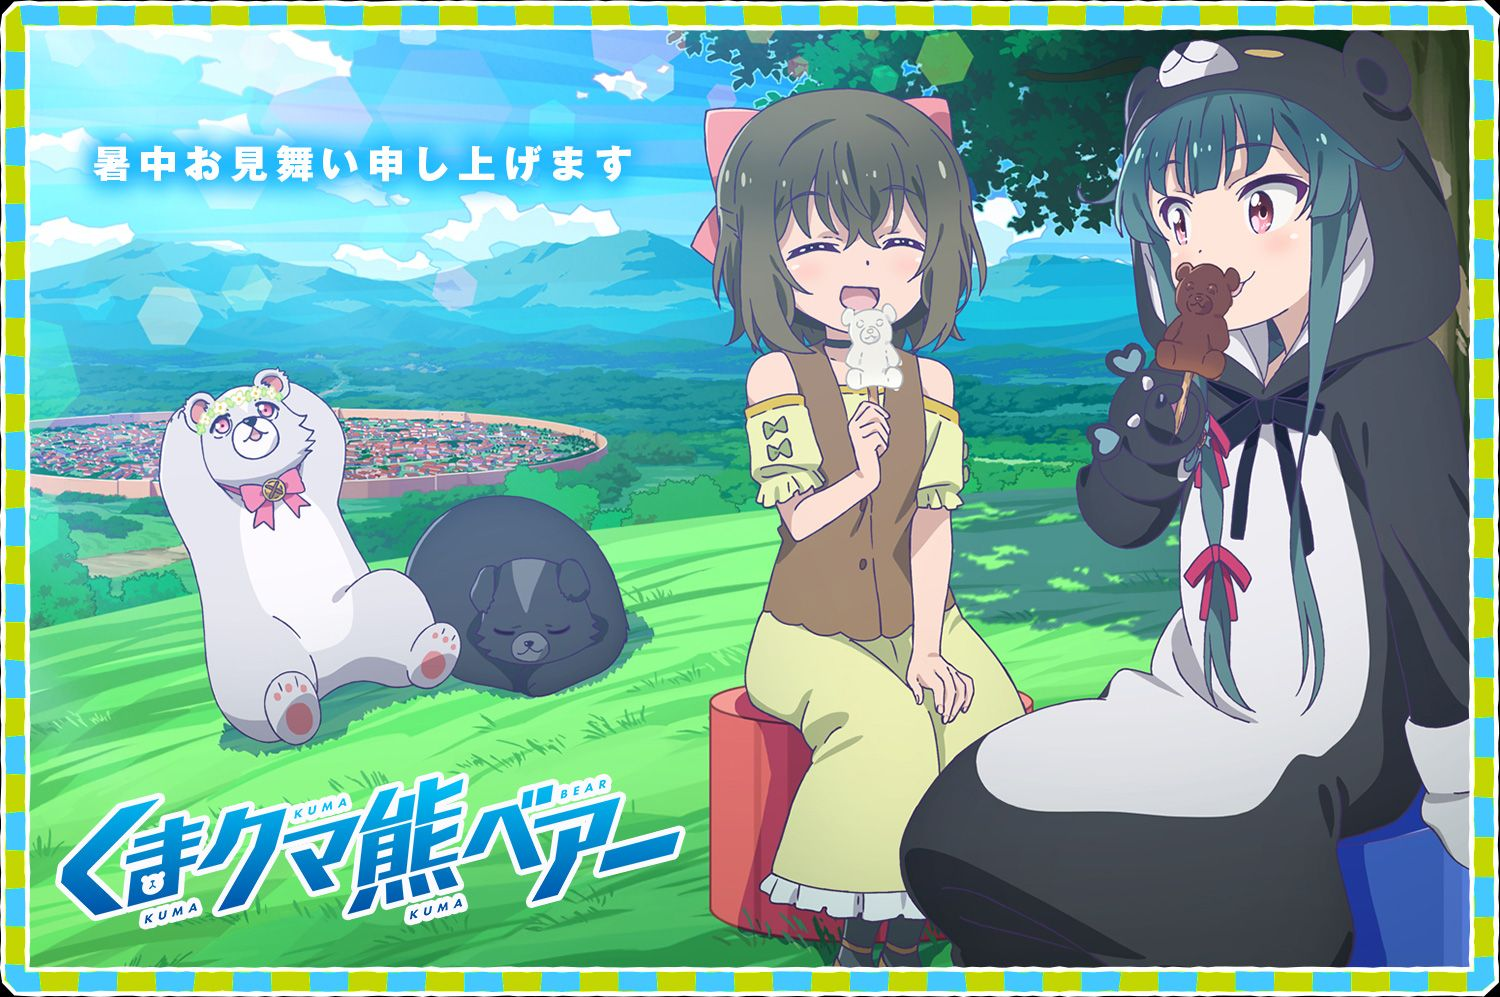 Crunchyroll Kuma Kuma Kuma Bear TV Anime Delivers